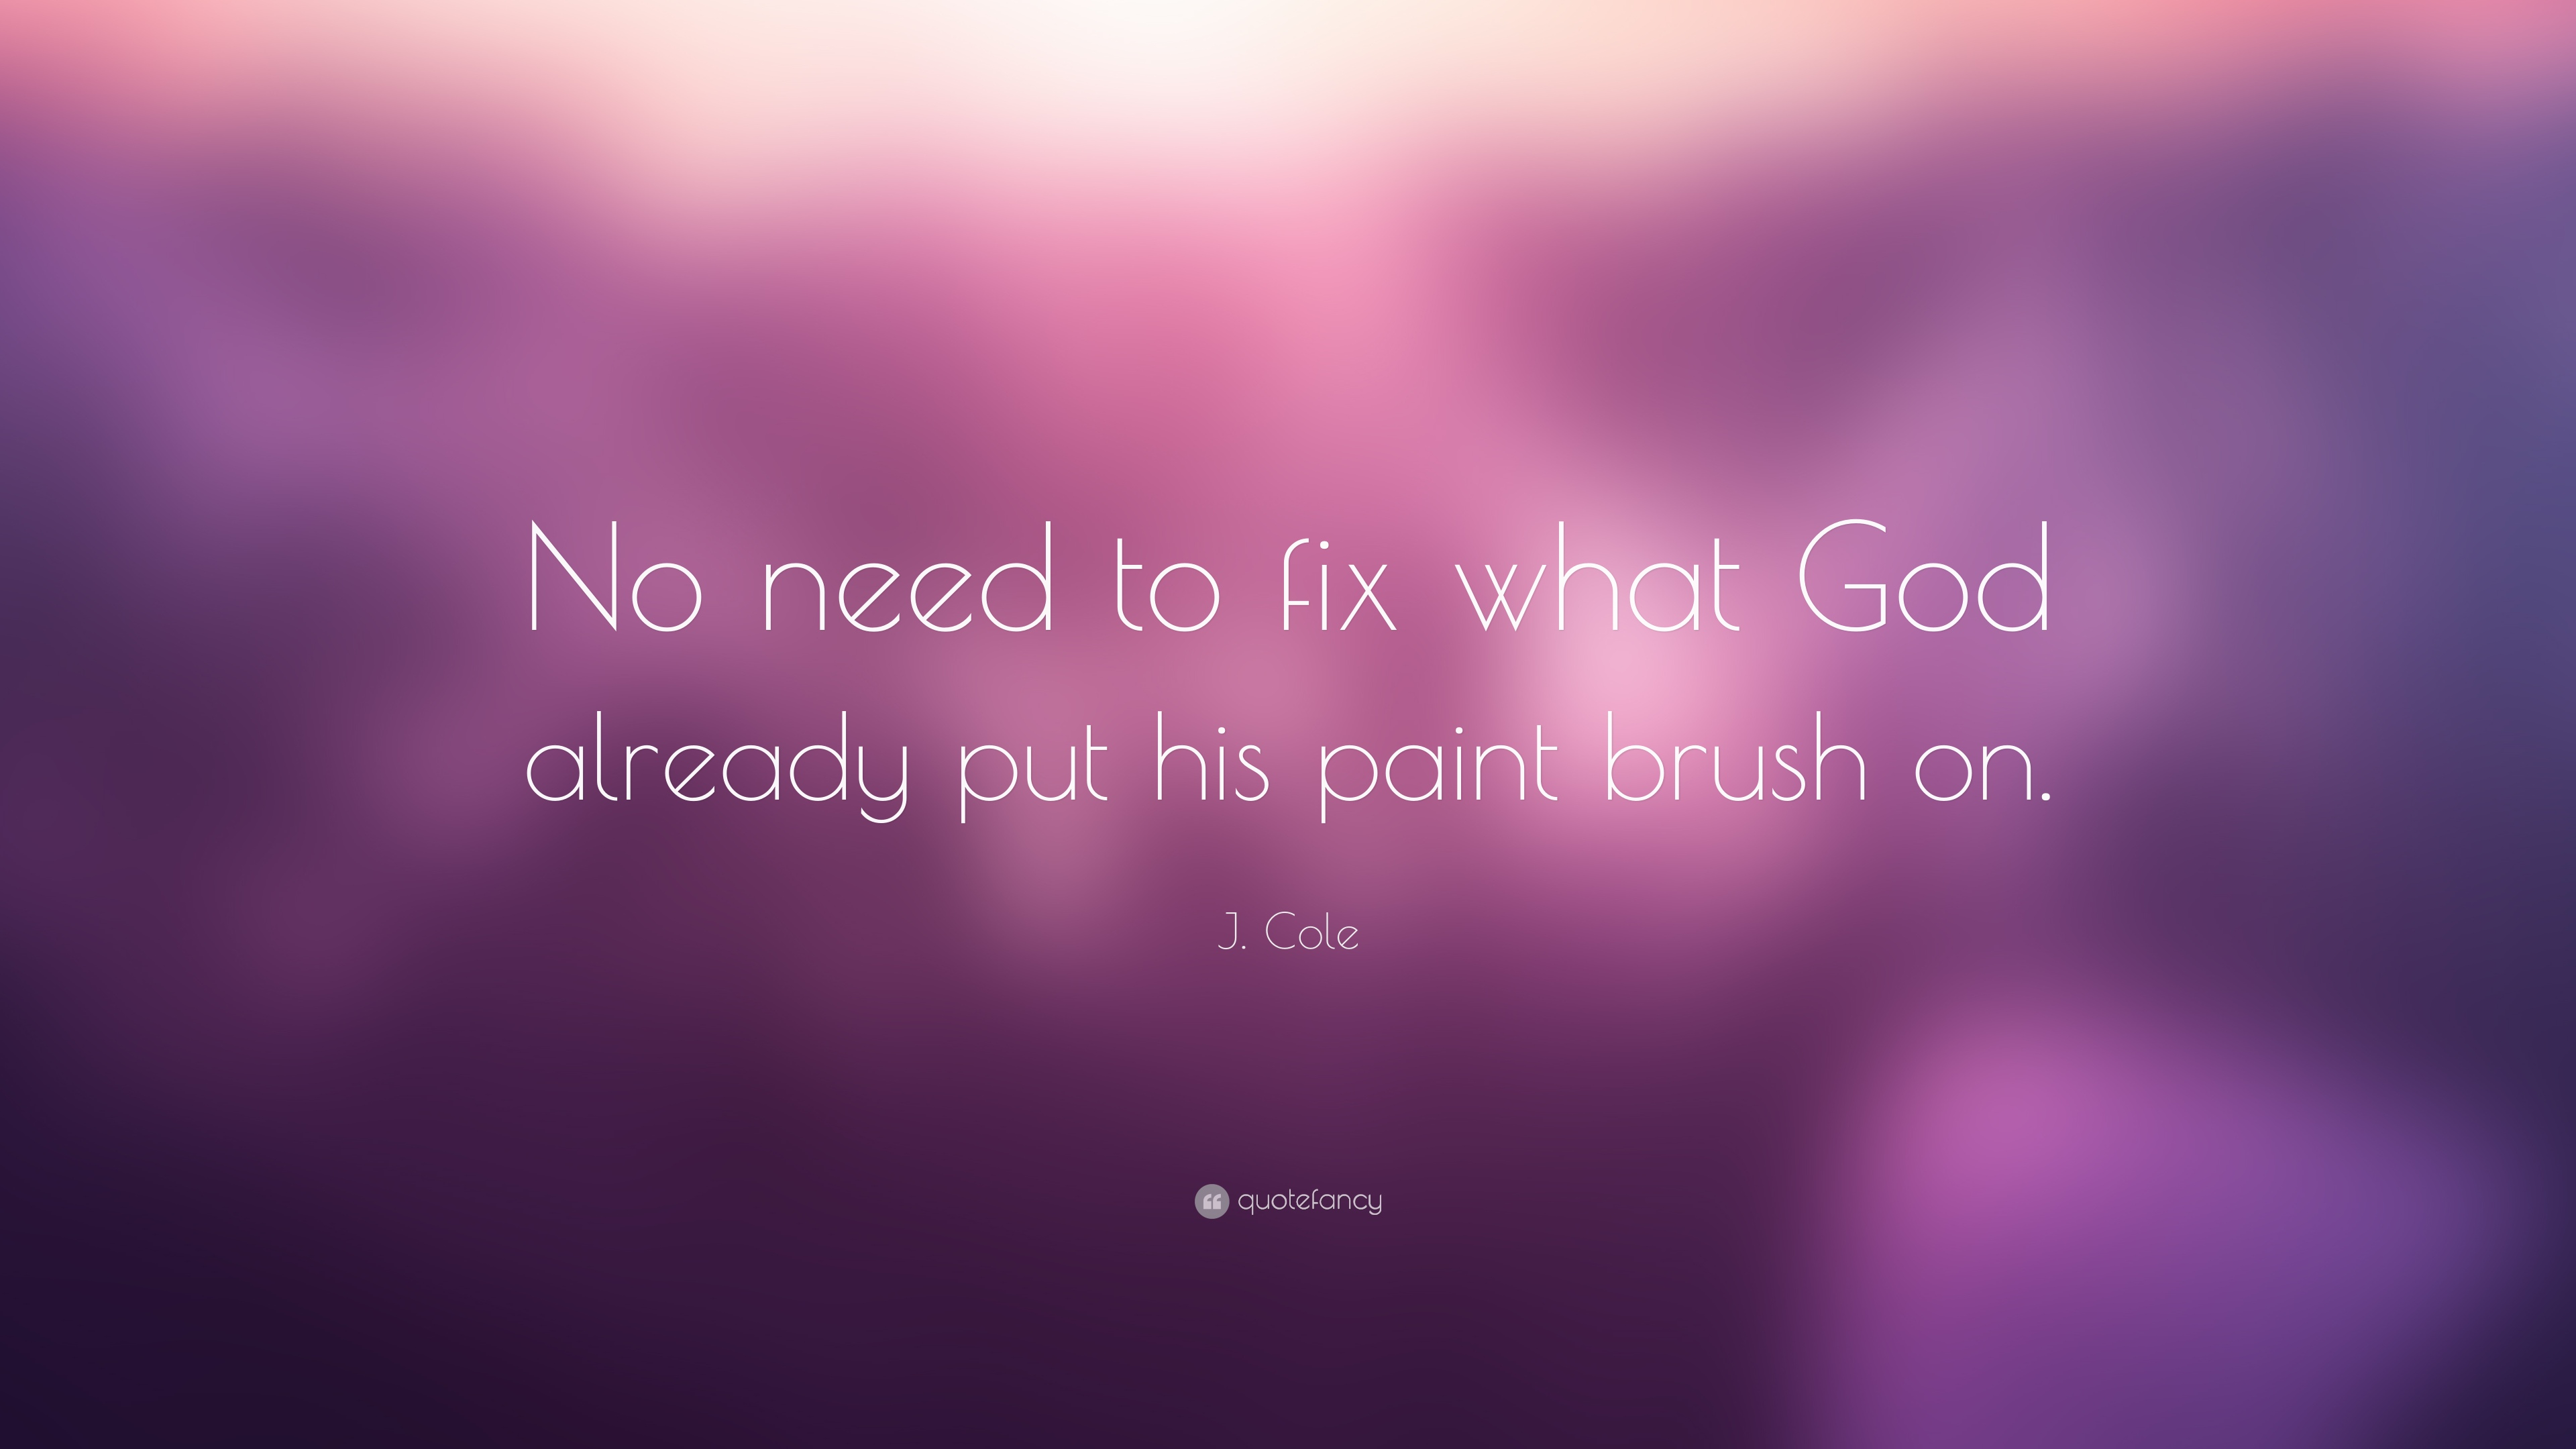 j cole quotes about god - photo #32